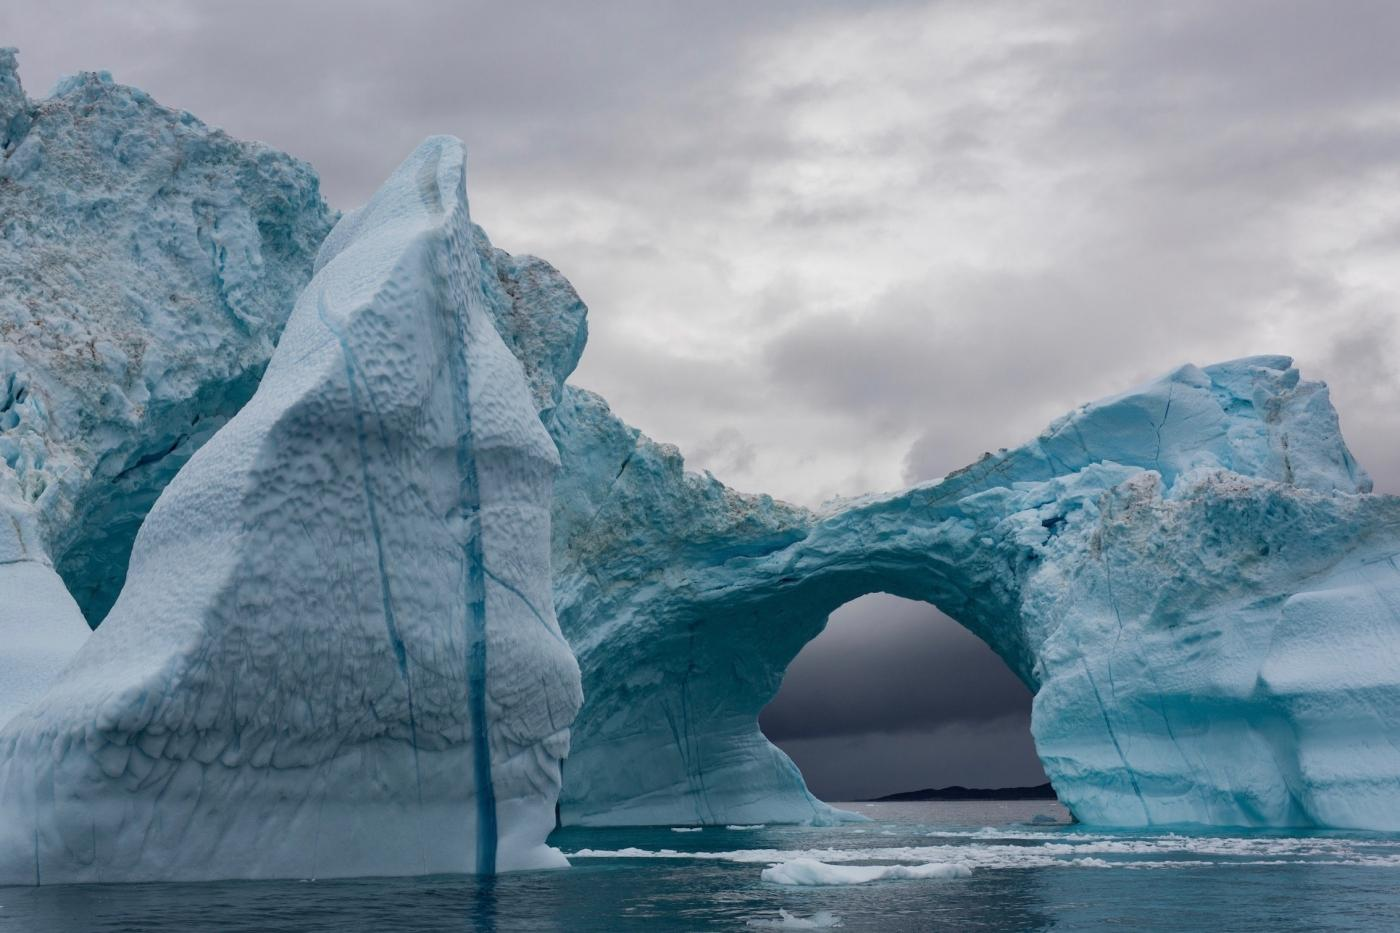 Boat Tour In Ilulissat. Photo by Aningaaq R Carlsen - Visit Greenland